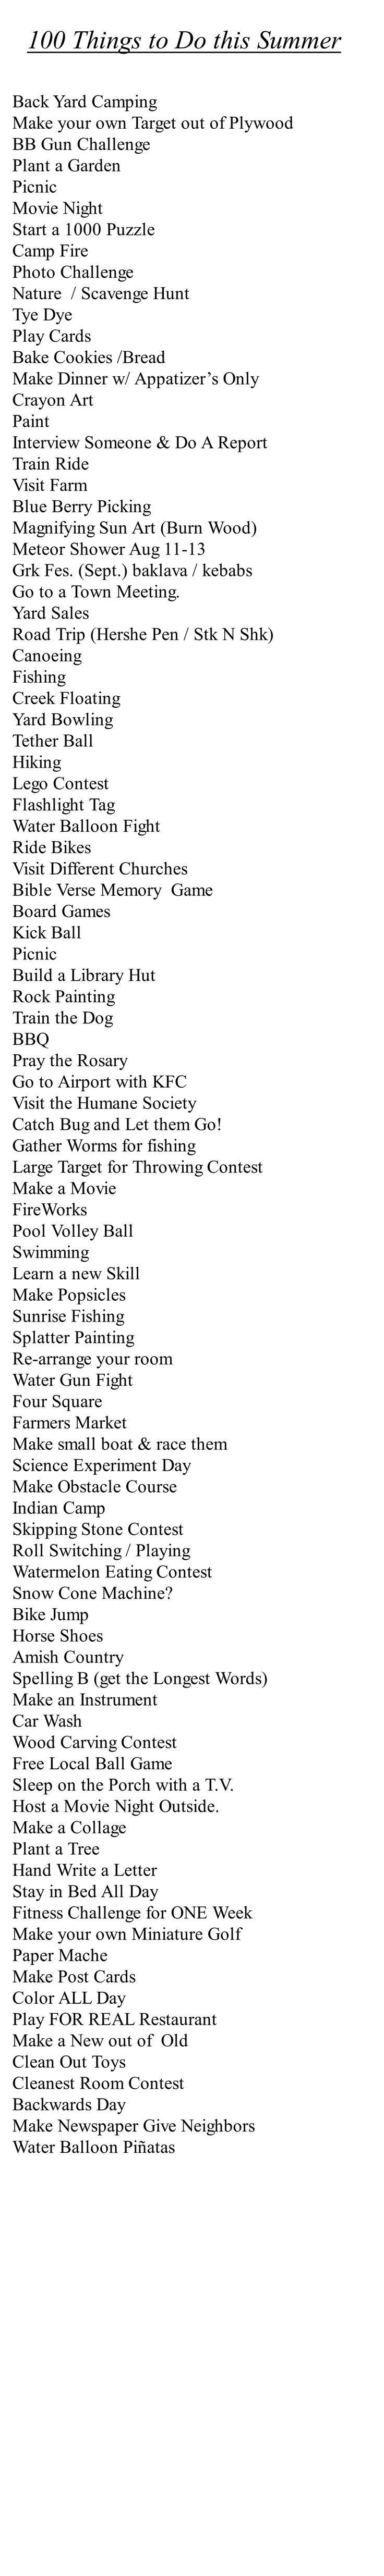 Have kids make Summer bucket lists!